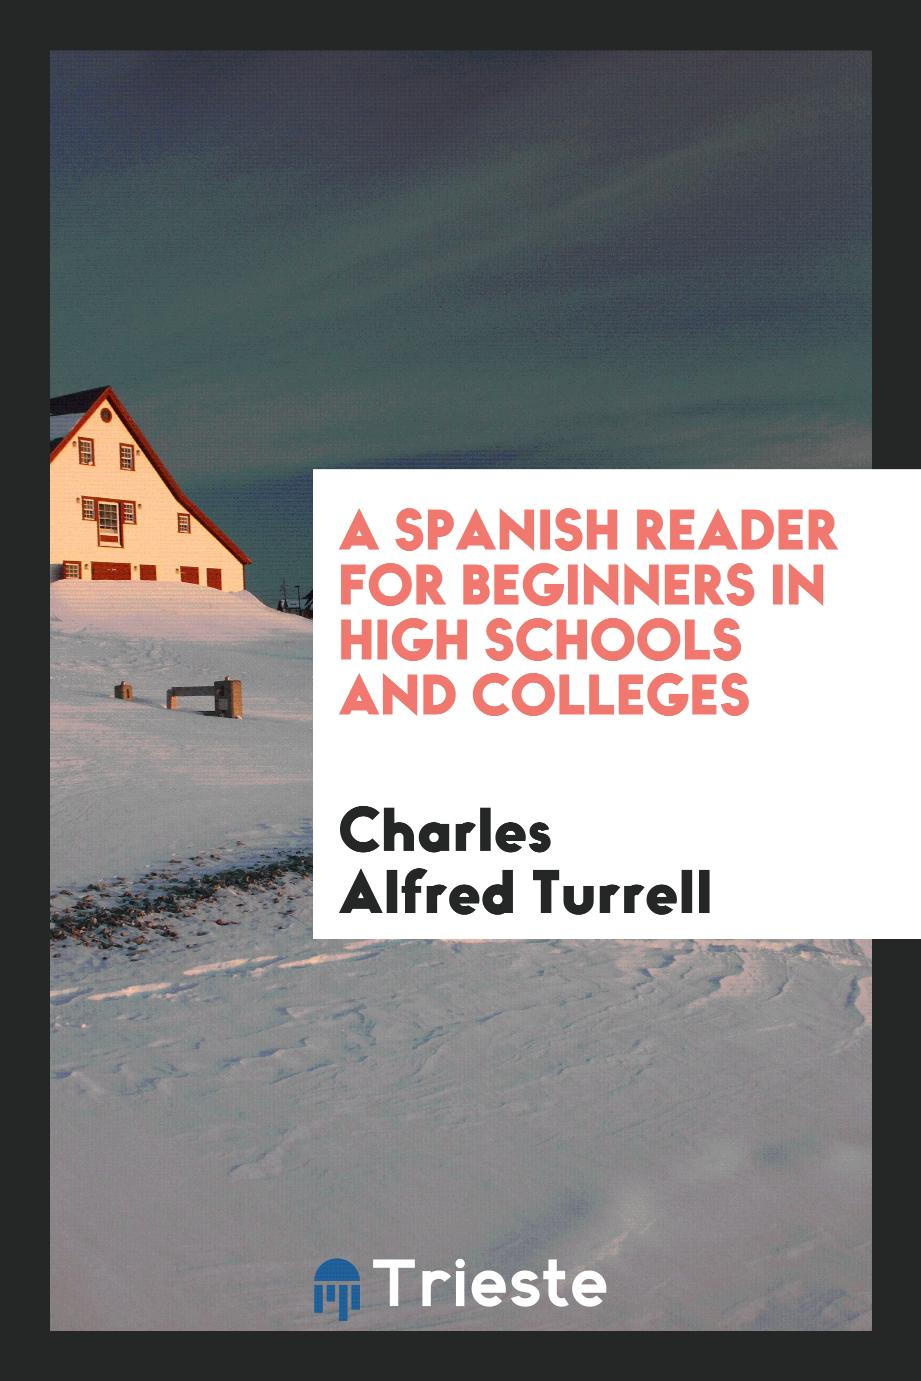 A Spanish Reader for Beginners in High Schools and Colleges